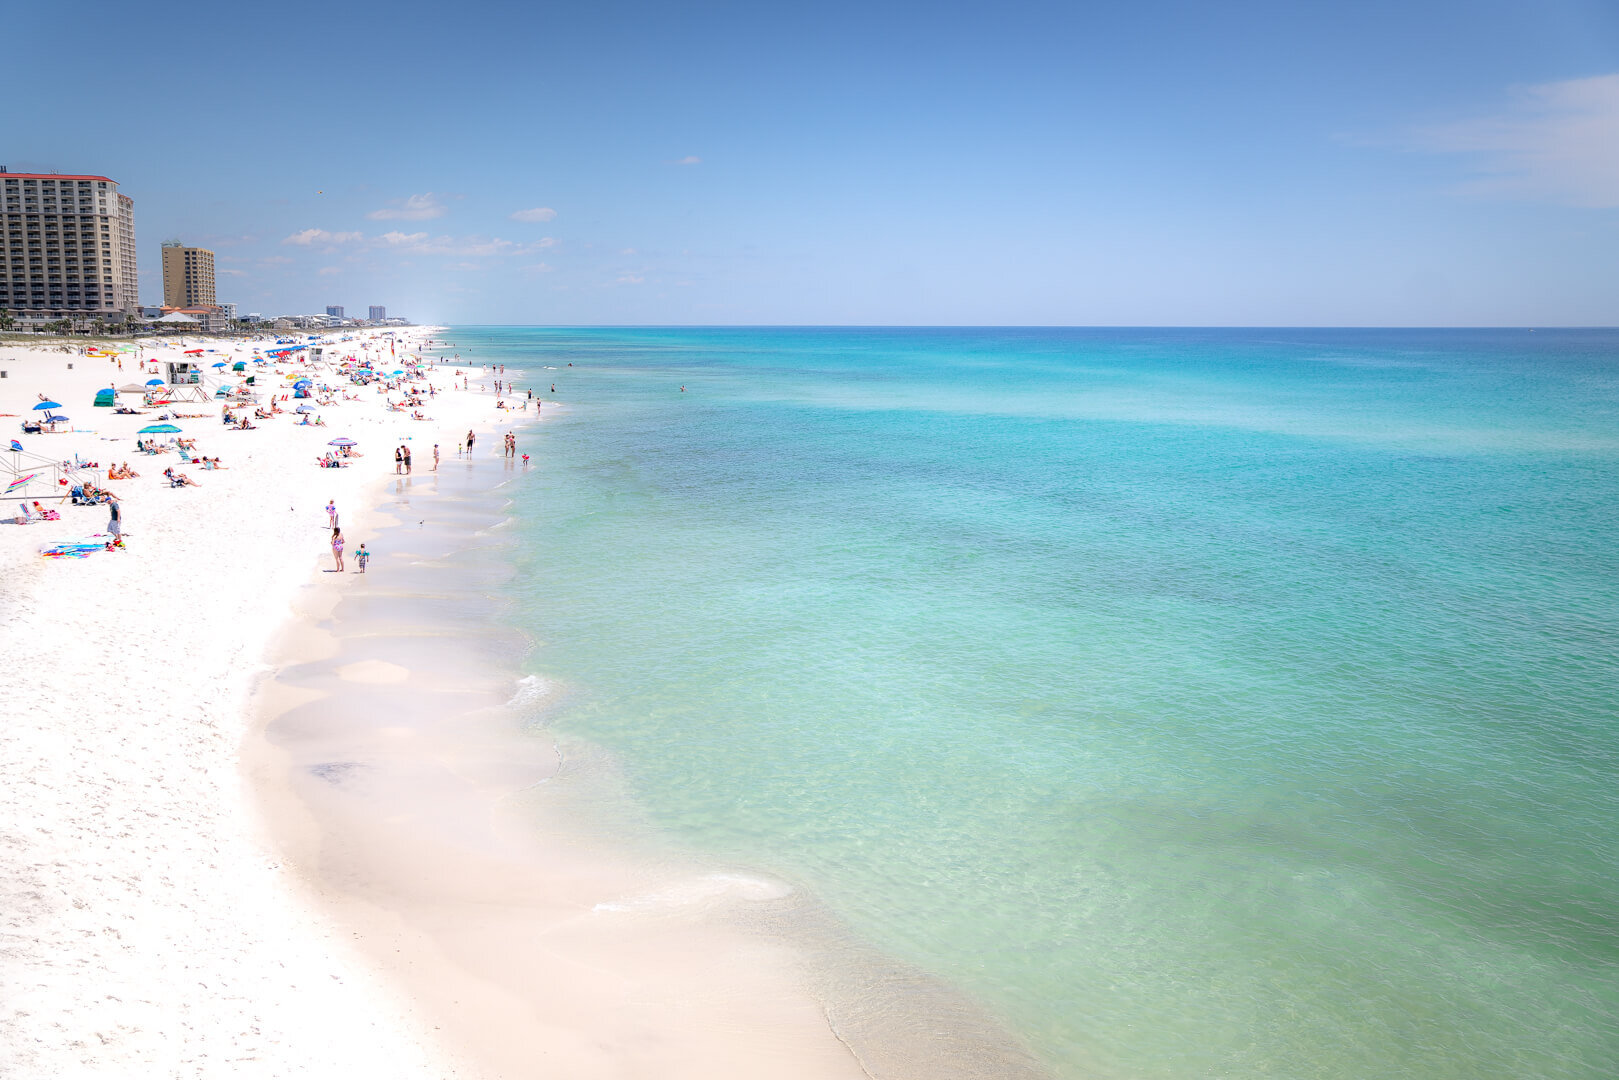 The view of Pensacola Beach from the enormous peer that jets out into The Gulf.